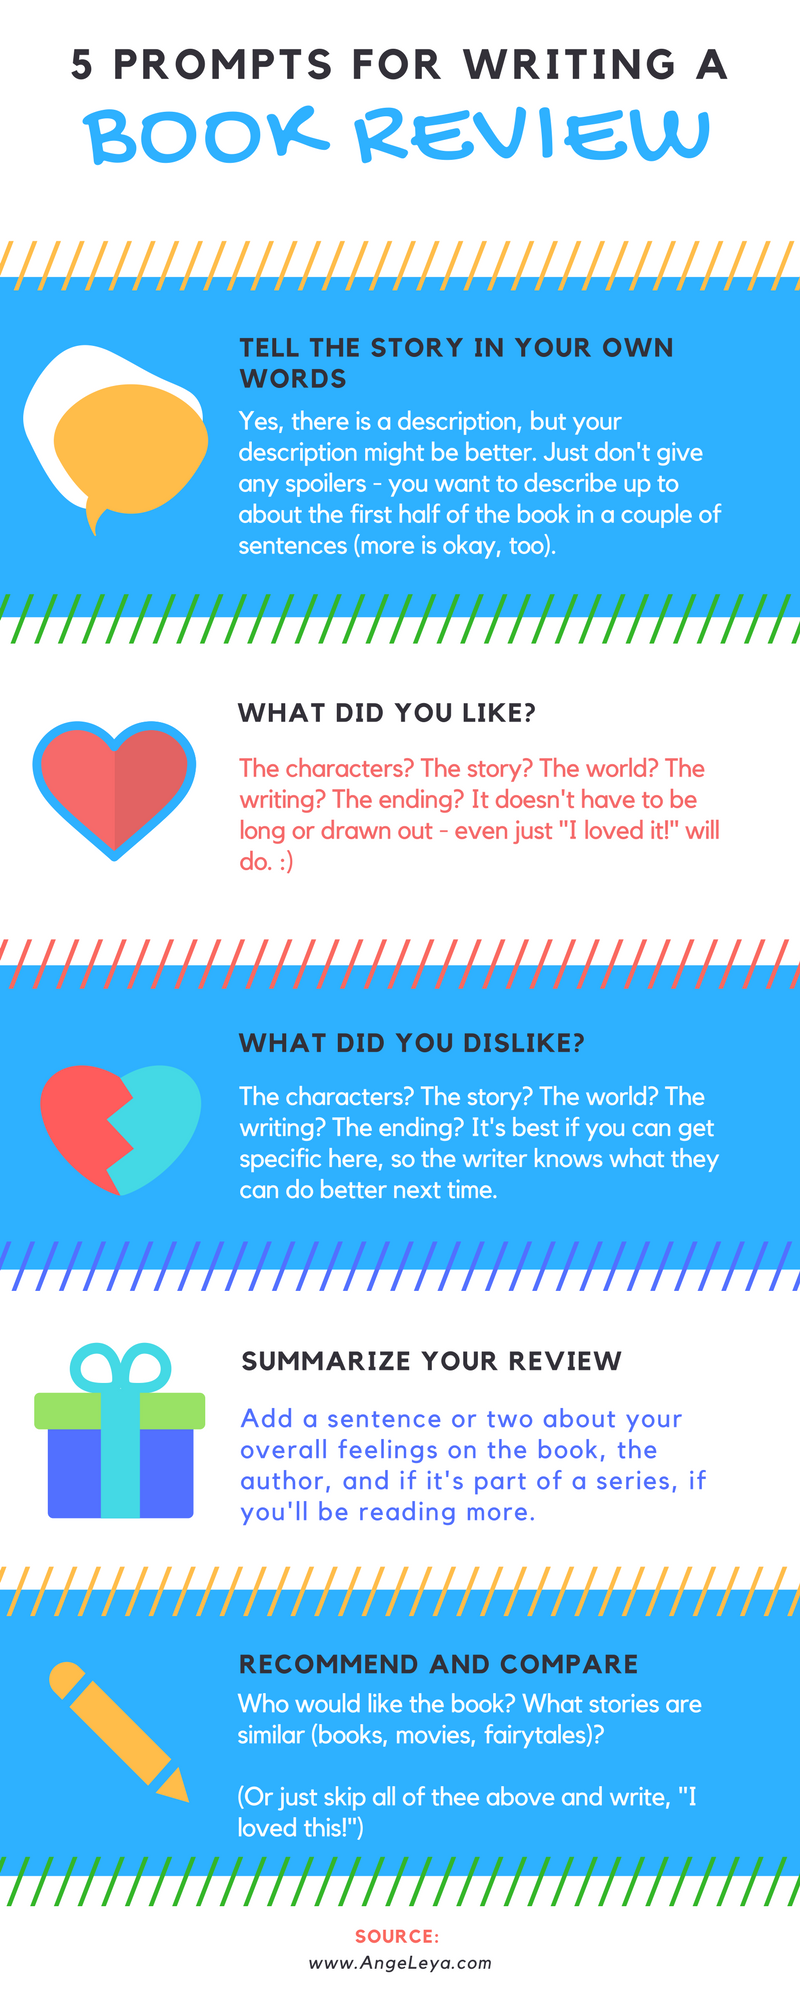 How to Write a Book Review Infographic | www.angeleya.com